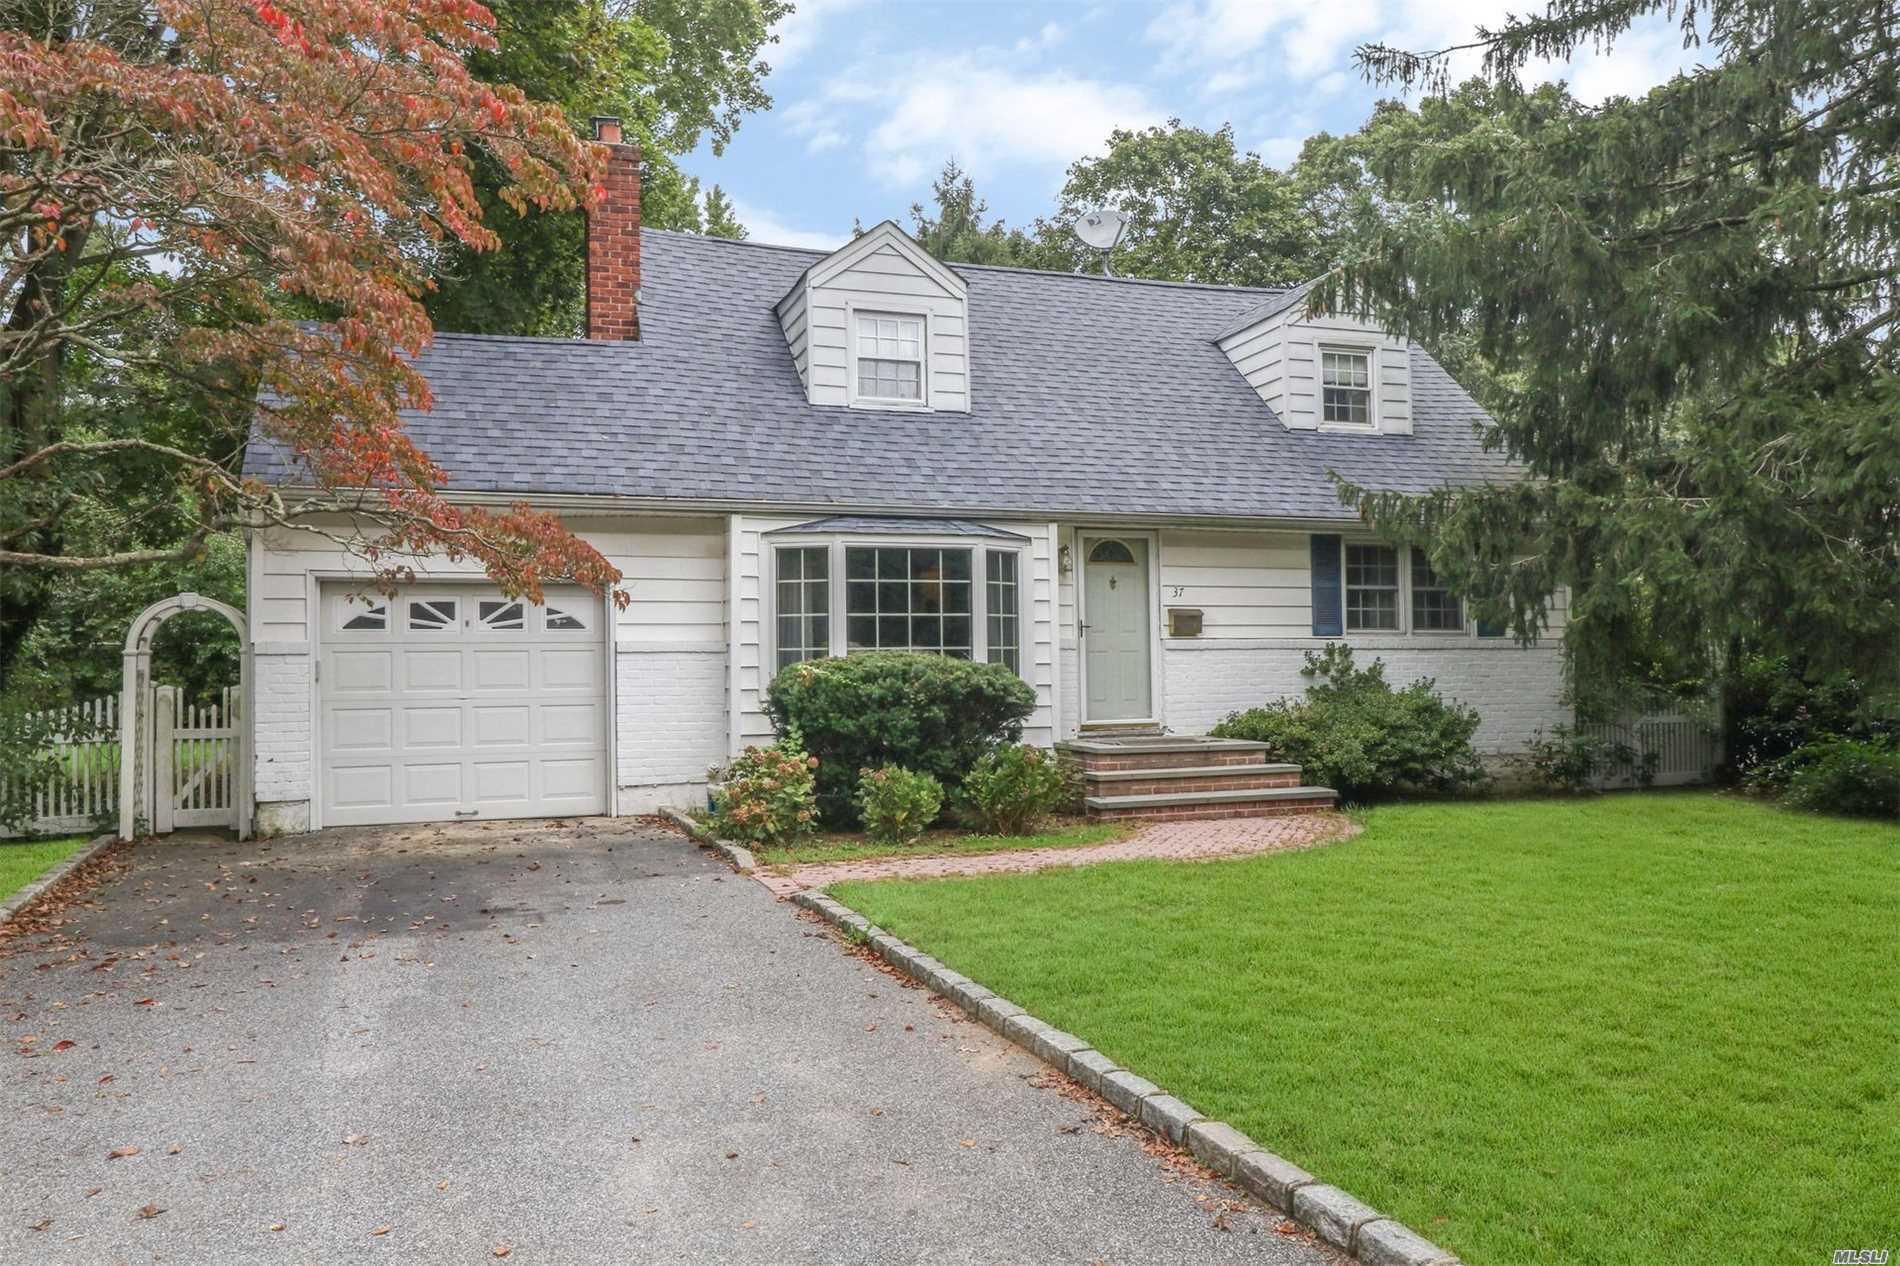 Expanded Cape! Great Flow For Entertaining. Living Room With Fireplace And Wood Floors Under Carpet. Sunny, Expanded Dining Room With Additional Windows. Eat In Kitchen With Granite/Stainless Appliances. Sun Room With Access To Private Backyard. 2 Bedrooms On The Main Level (1 Can Be Used As A Family Room) And A Full Bathroom. 2 Large Upstairs Bedrooms And A Full Bath. Gas Cooking/Heat. Hardwoods Under Carpets On Main Floor. Elwood Blue Ribbon School District. 10 Minutes To Lirr & Town.